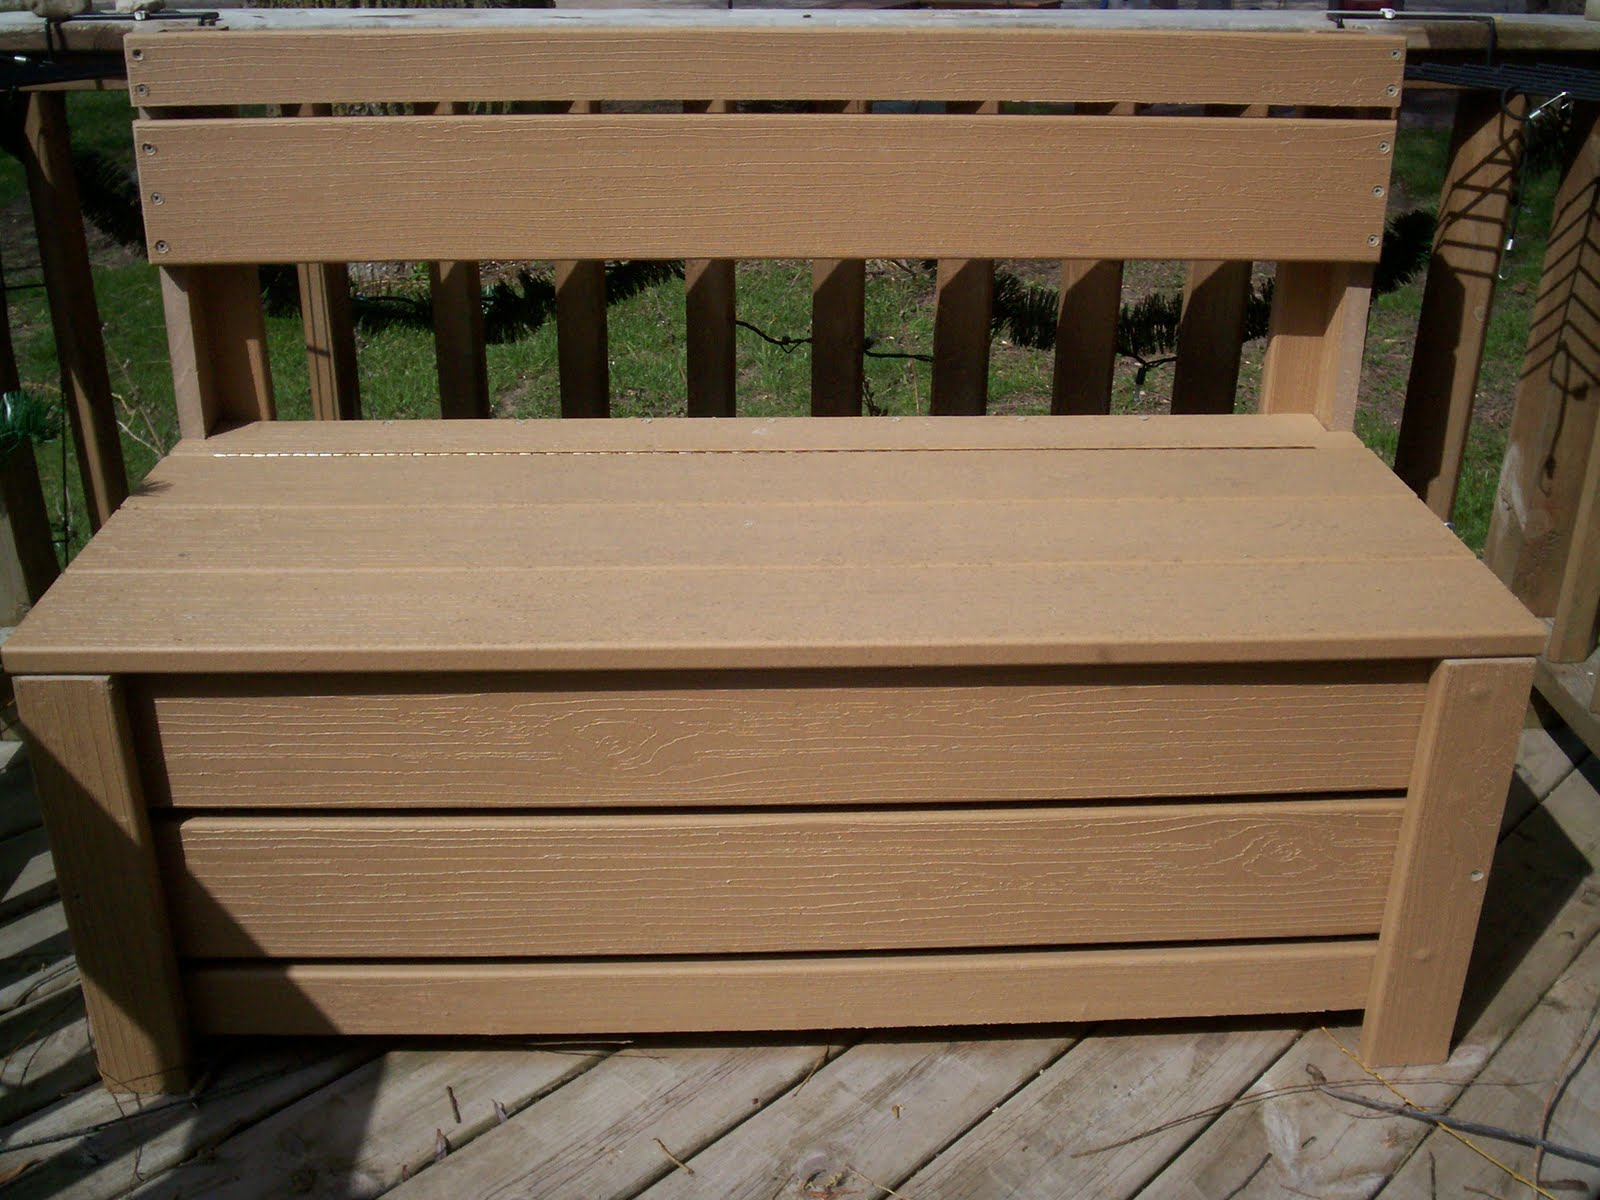 outdoor storage bench plans free | woodideas